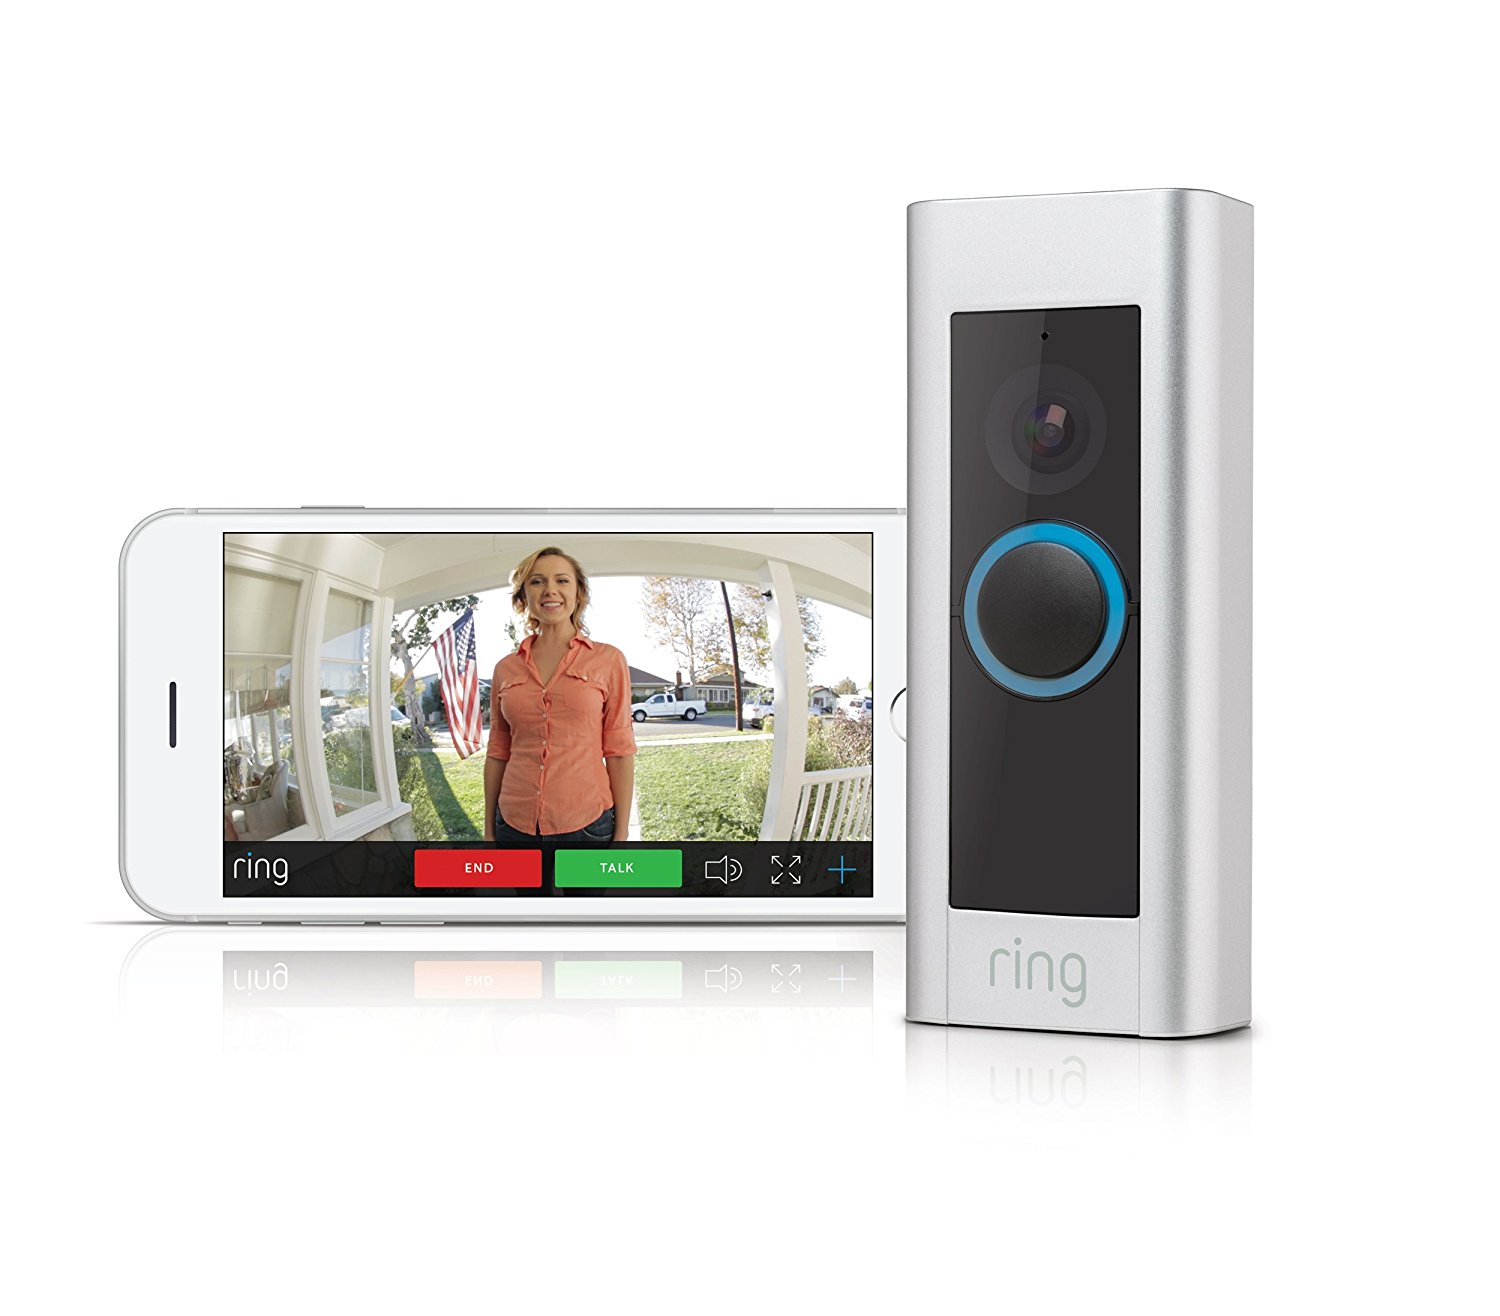 Good Guys Electronics Ring Smart Home Security Video Doorbell Pro Wiring Existing Required Works With